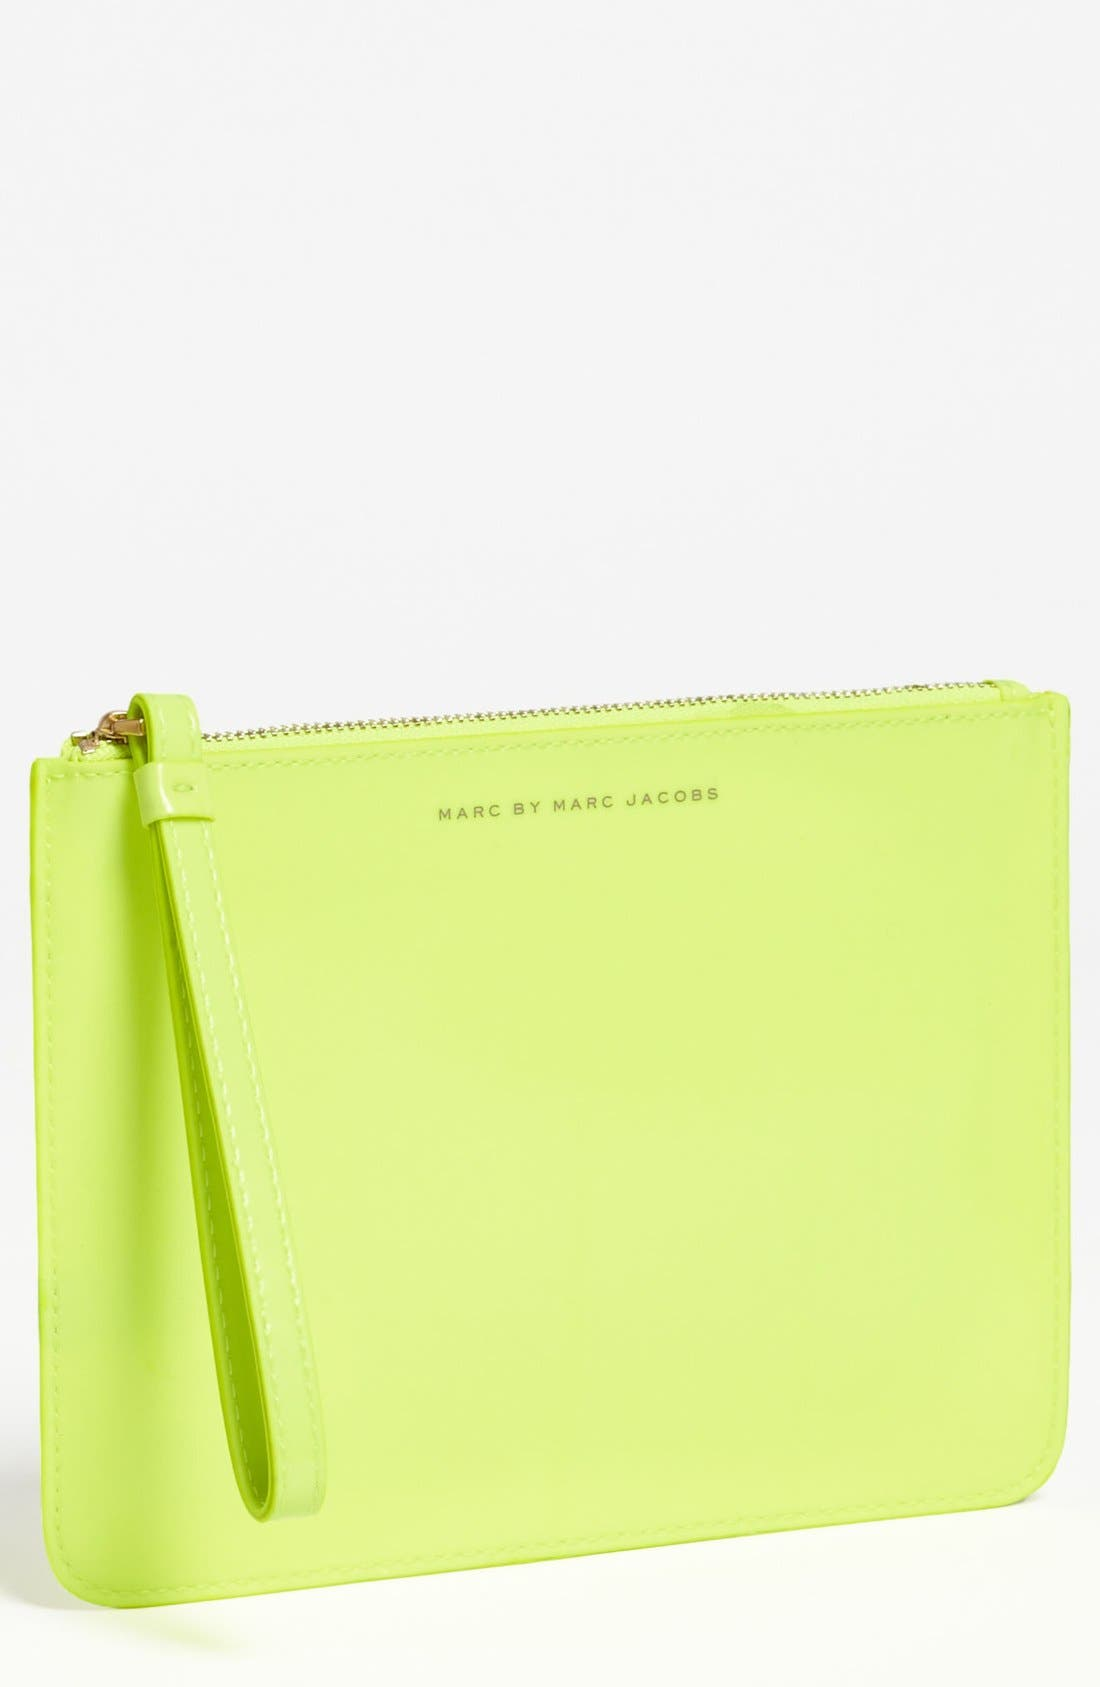 Alternate Image 1 Selected - MARC BY MARC JACOBS 'It's Back' Wristlet Pouch